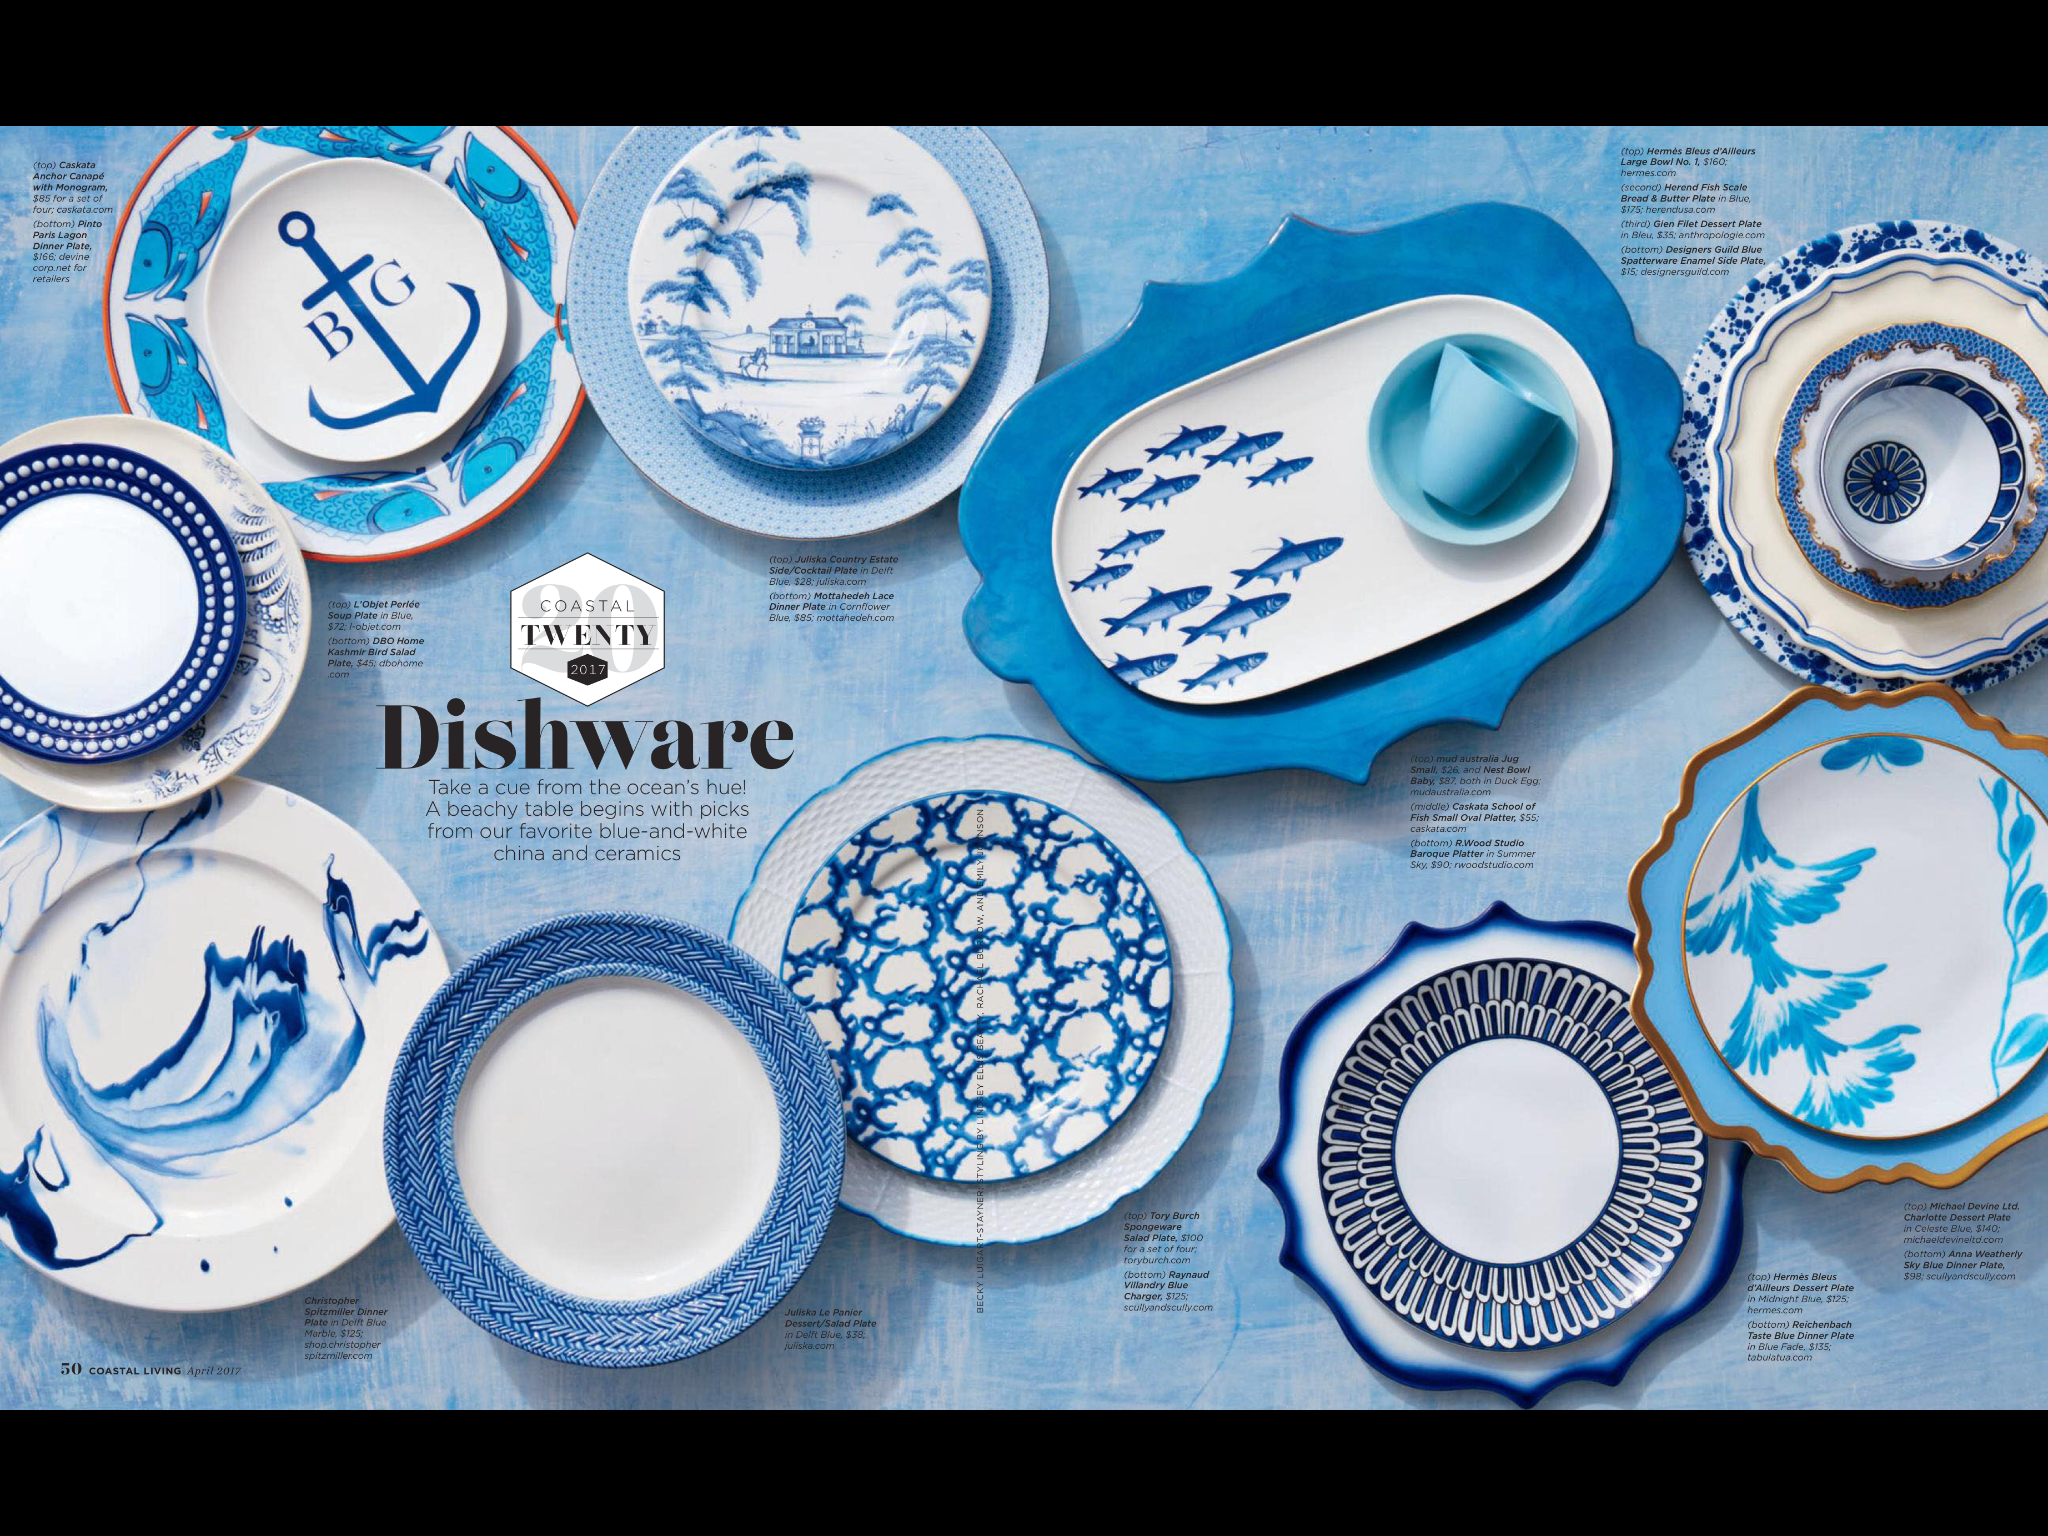 Pin By Emilia P On Colours With Images Decorative Plates Dishware Design